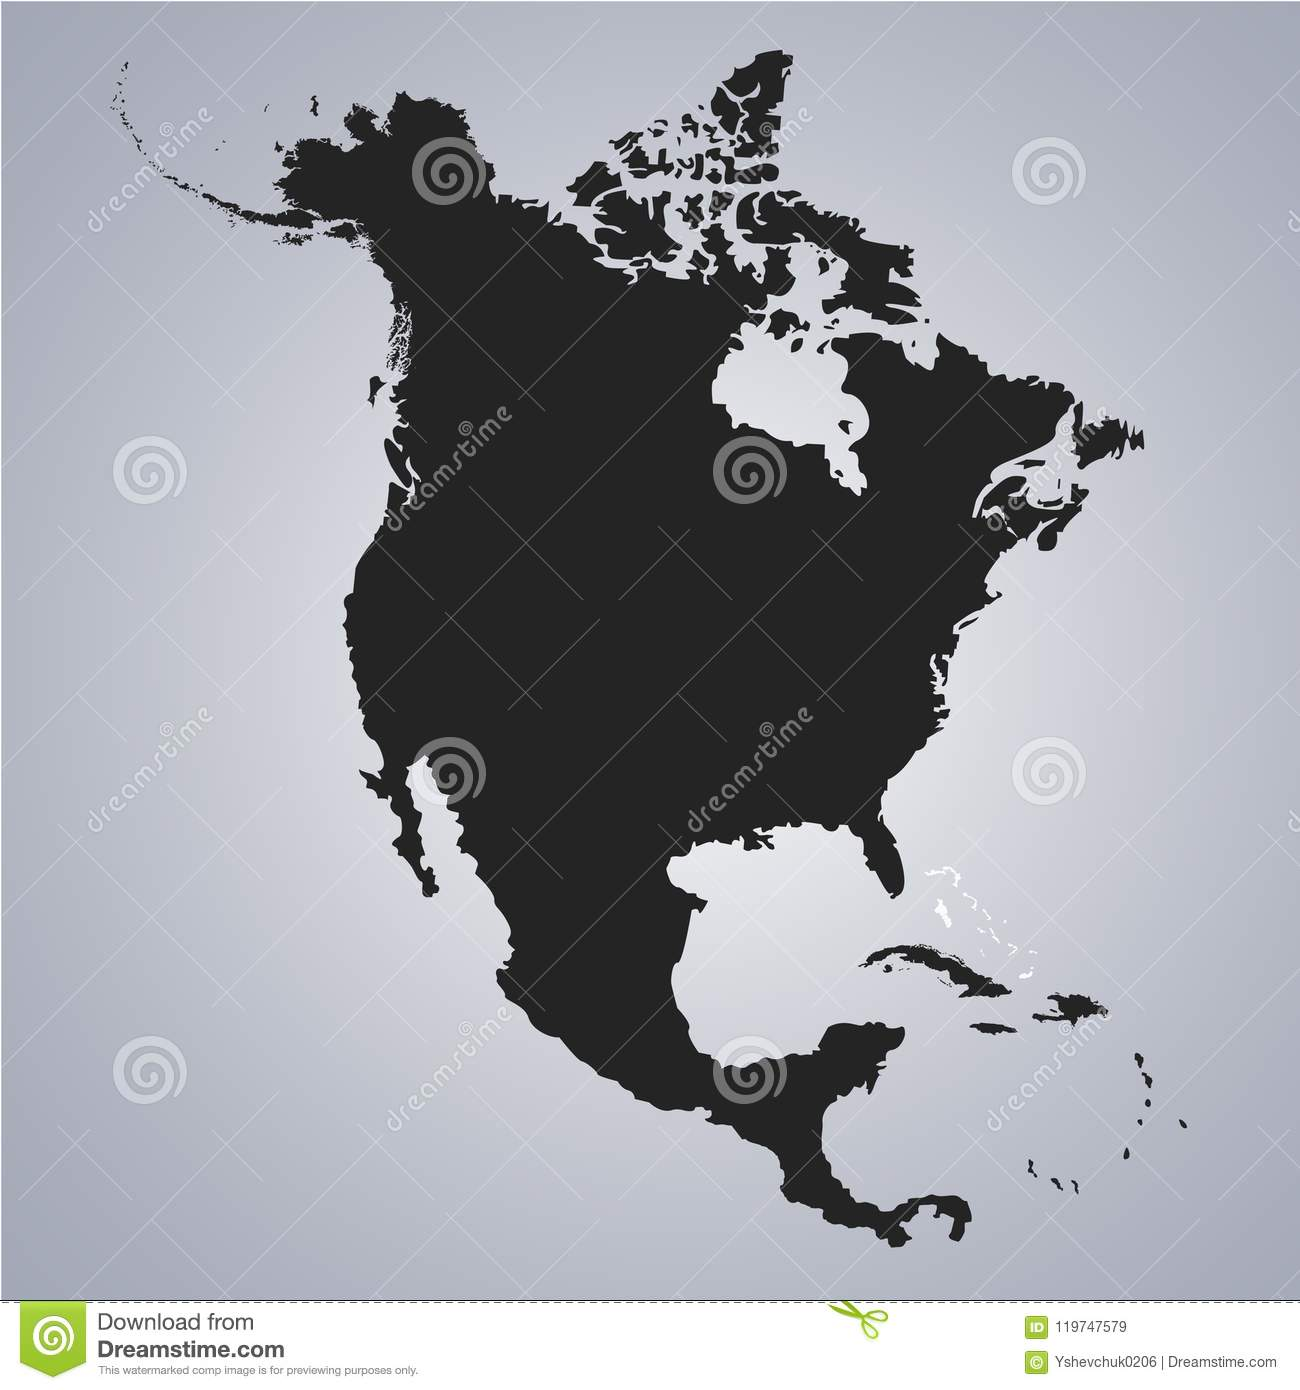 territory of bahamas on north america continent map on the grey